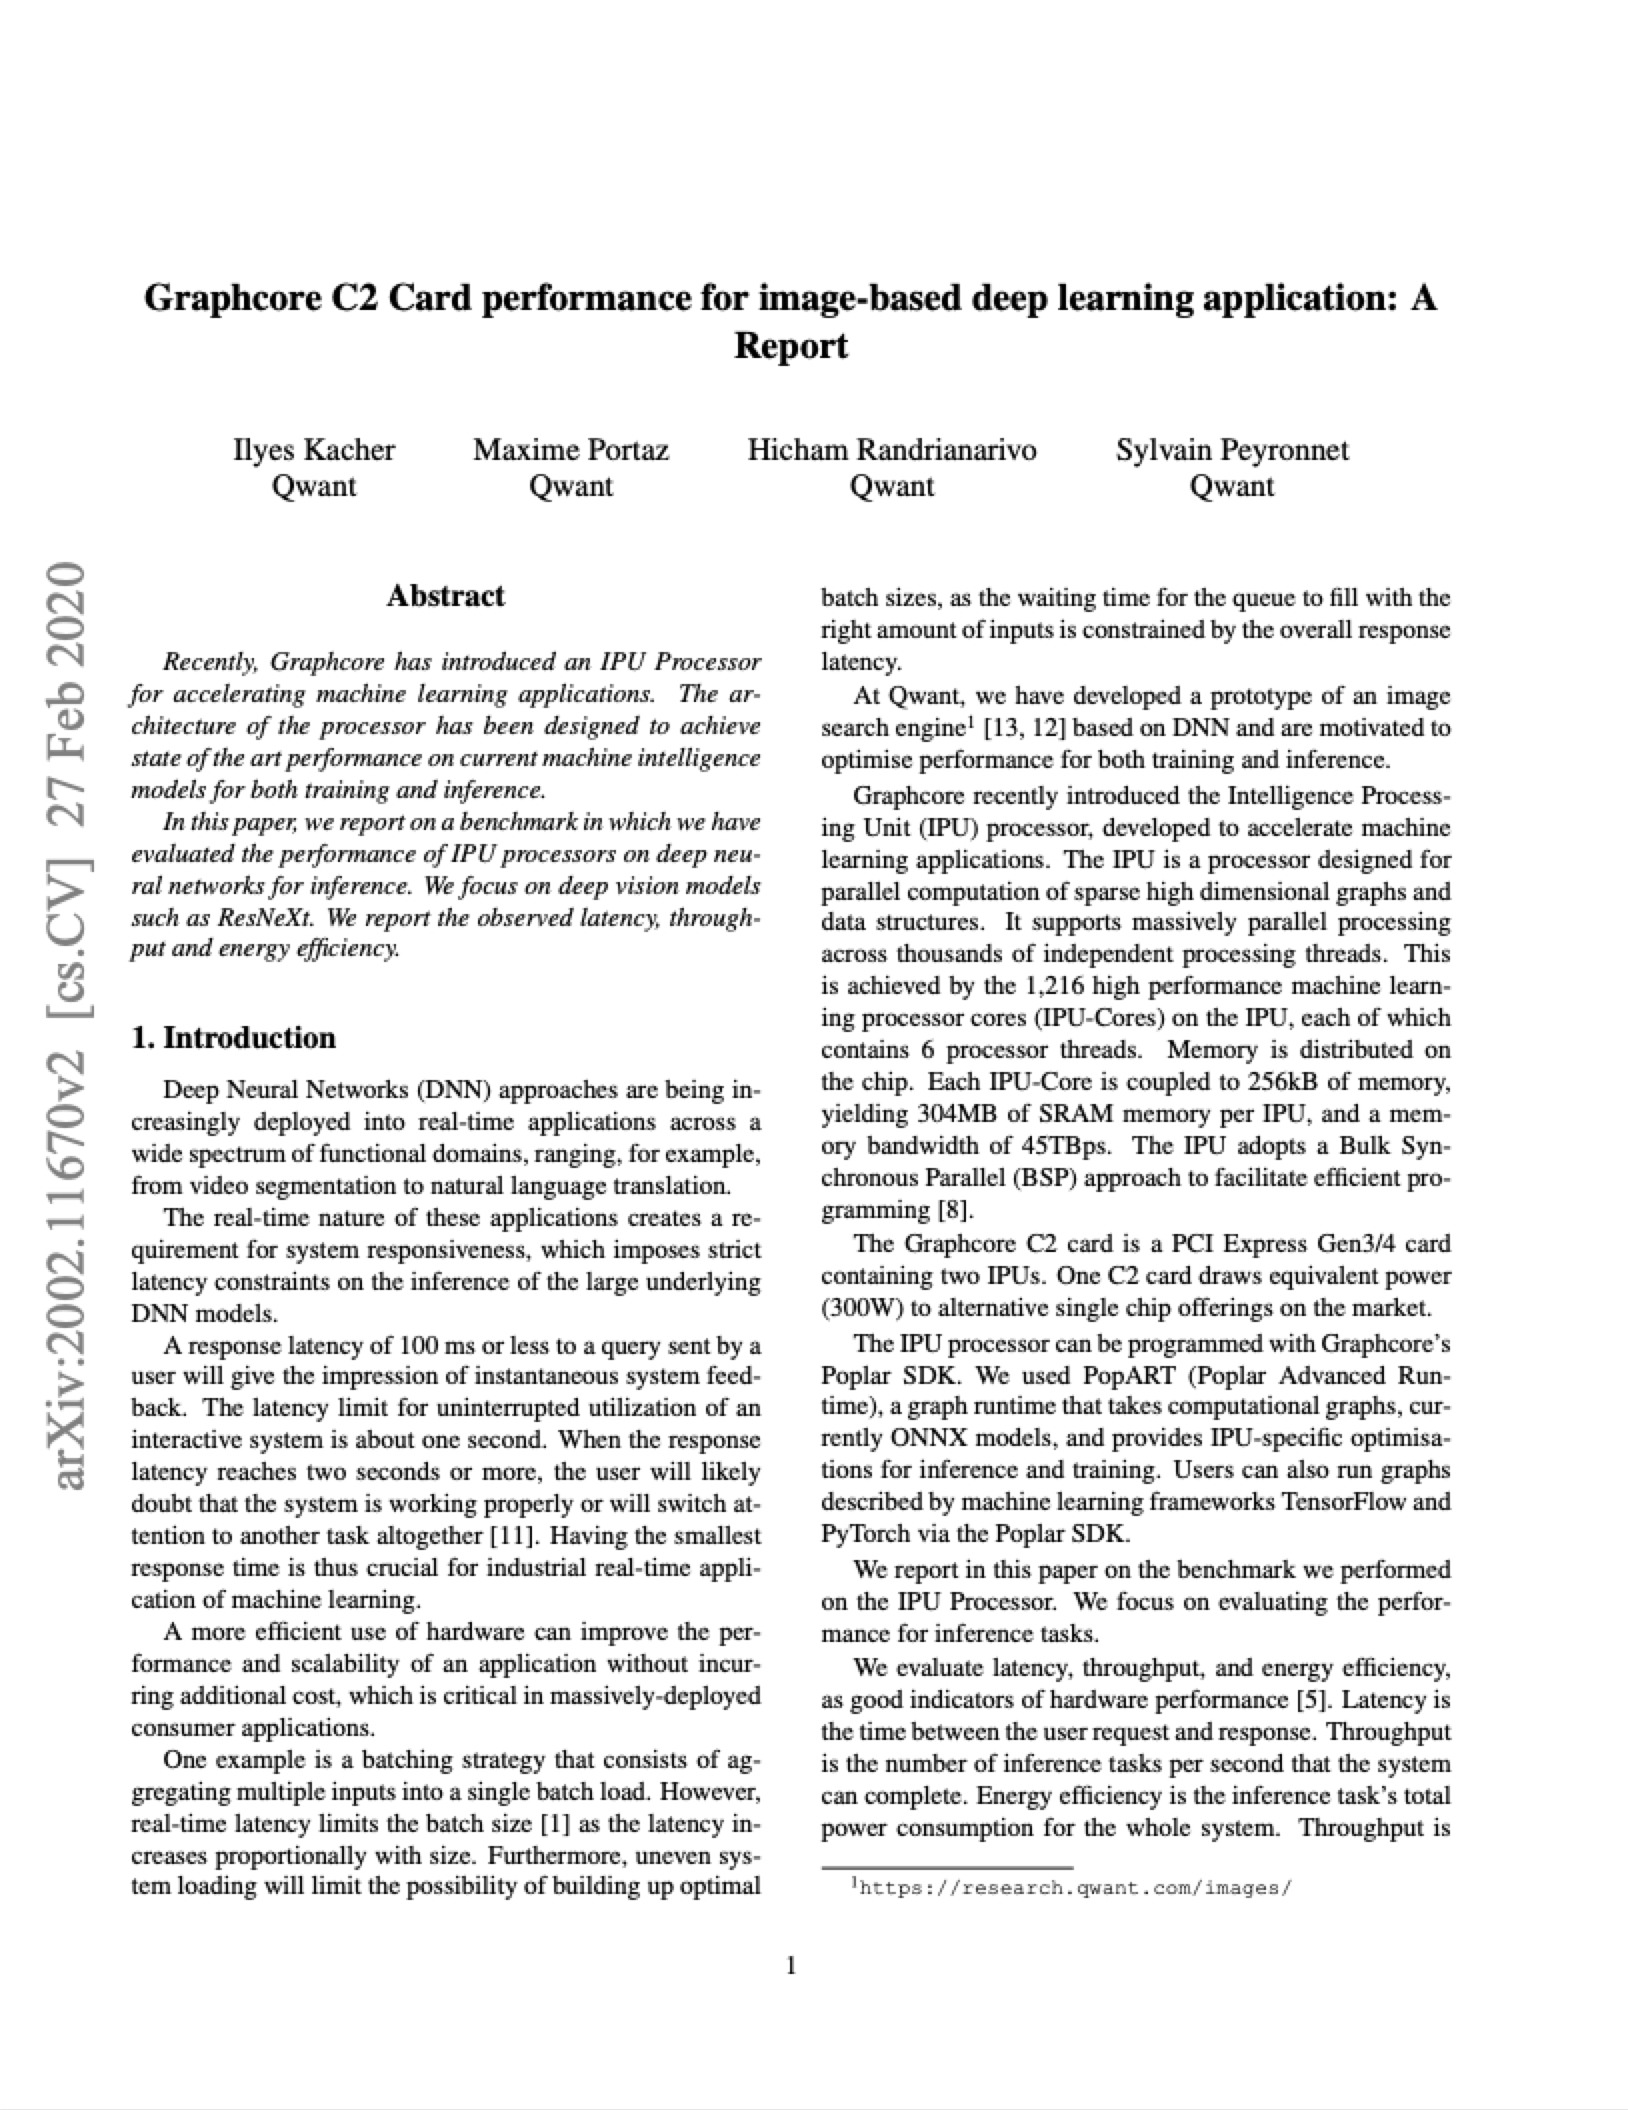 Qwant: Graphcore C2 Card performance for image-based deep learning application: A Report